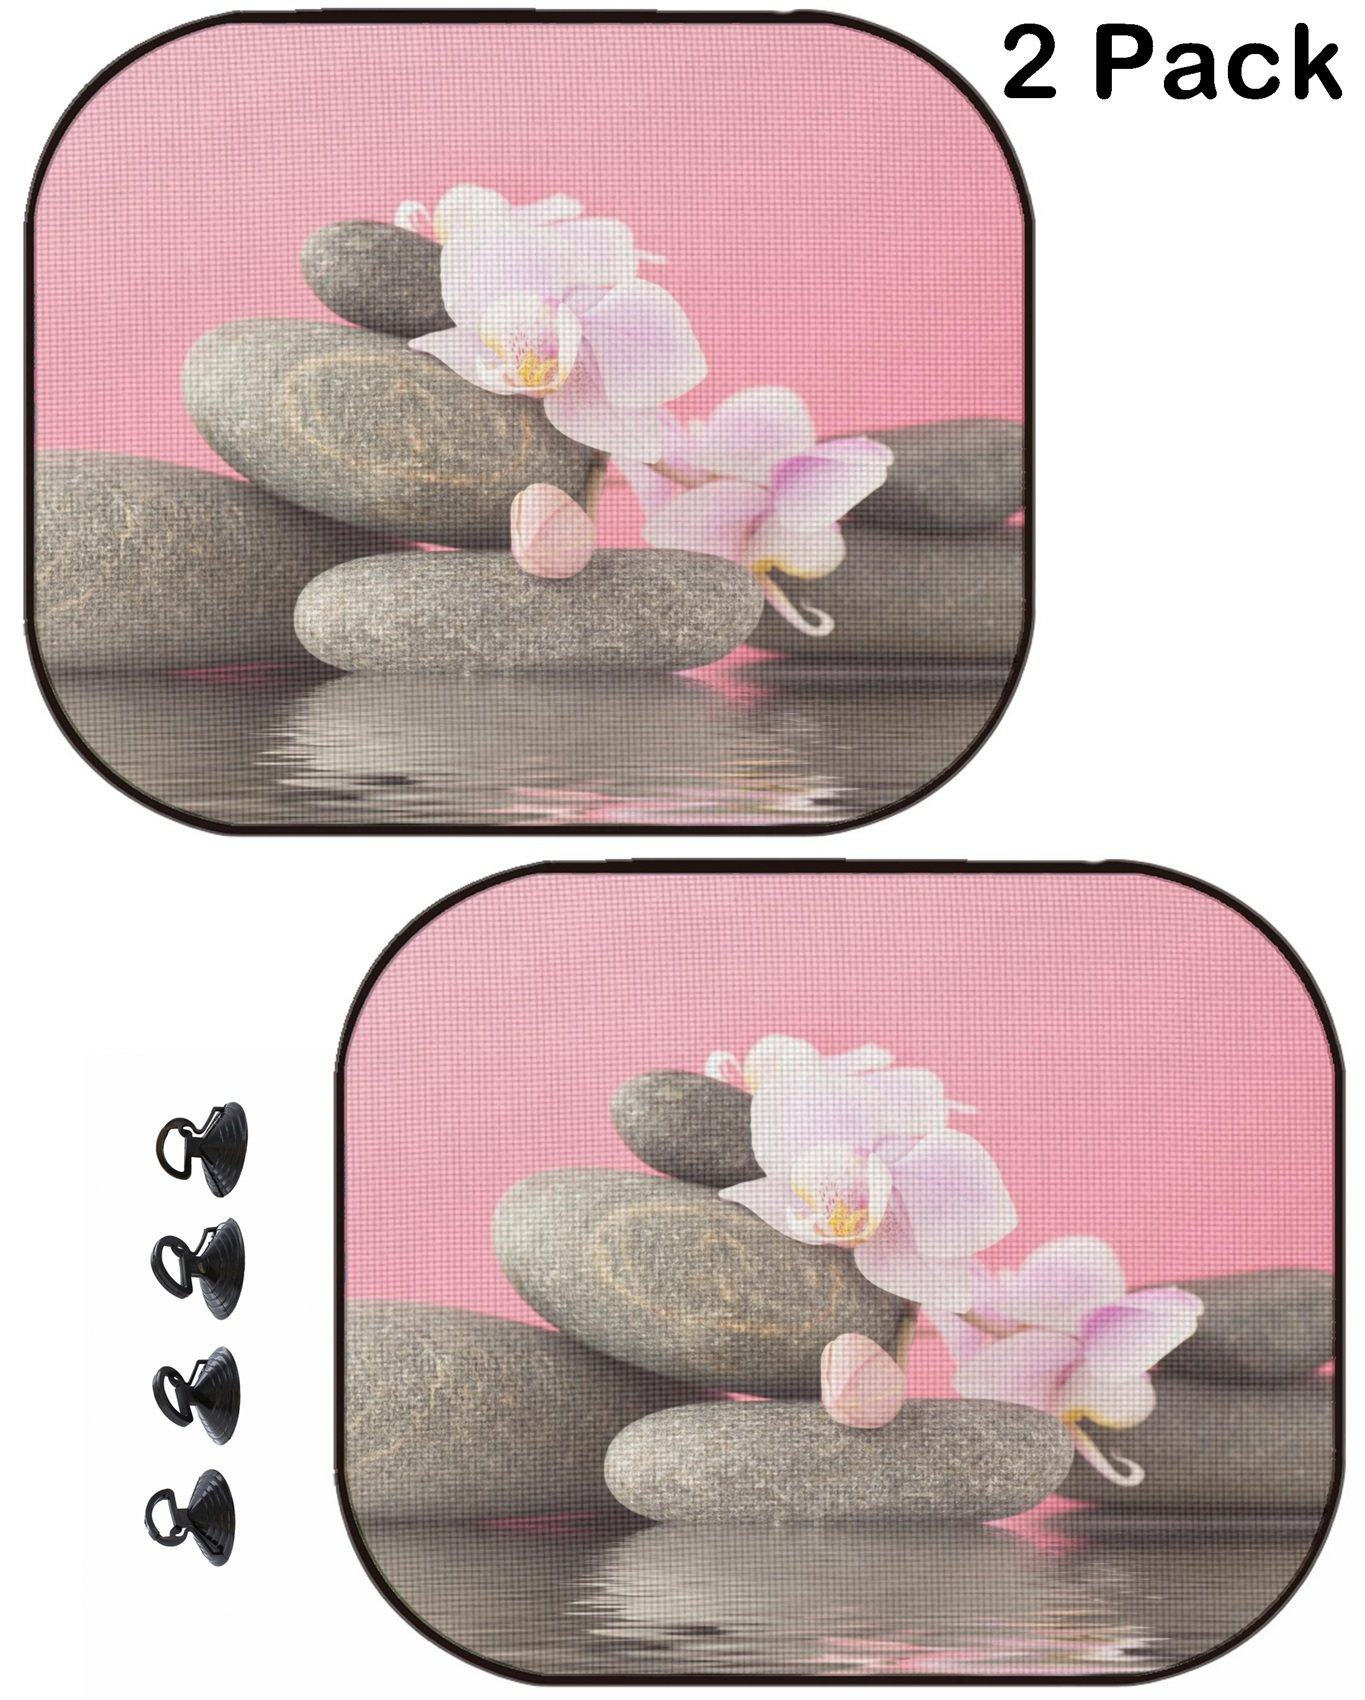 MSD Car Sun Shade Protector Block Damaging UV Rays Sunlight Heat for All Vehicles, 2 Pack Image ID 28544324 Spa Stones on Pink Background with Orchids